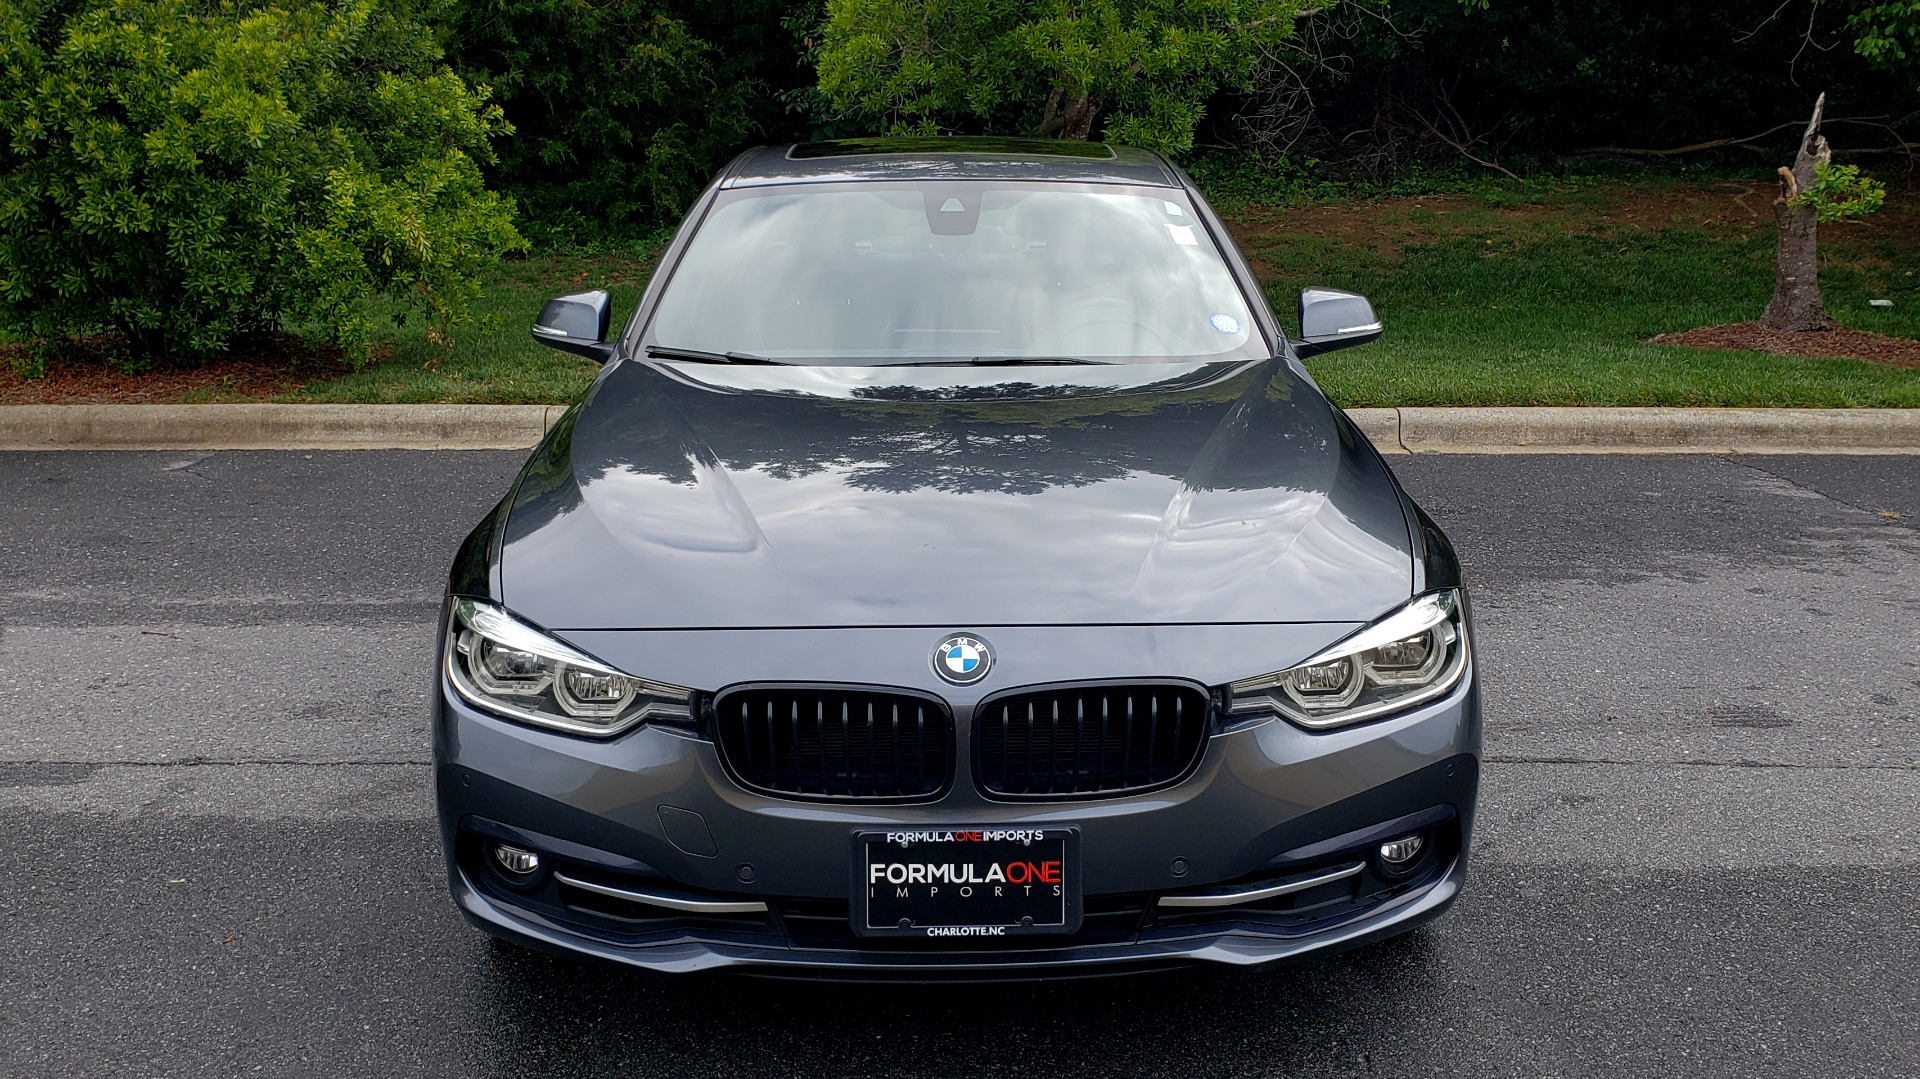 Used 2017 BMW 3 SERIES 340I XDRIVE SPORT / NAV / DRVR ASST PLUS / PARK ASST / CLD WTHR for sale $28,995 at Formula Imports in Charlotte NC 28227 17